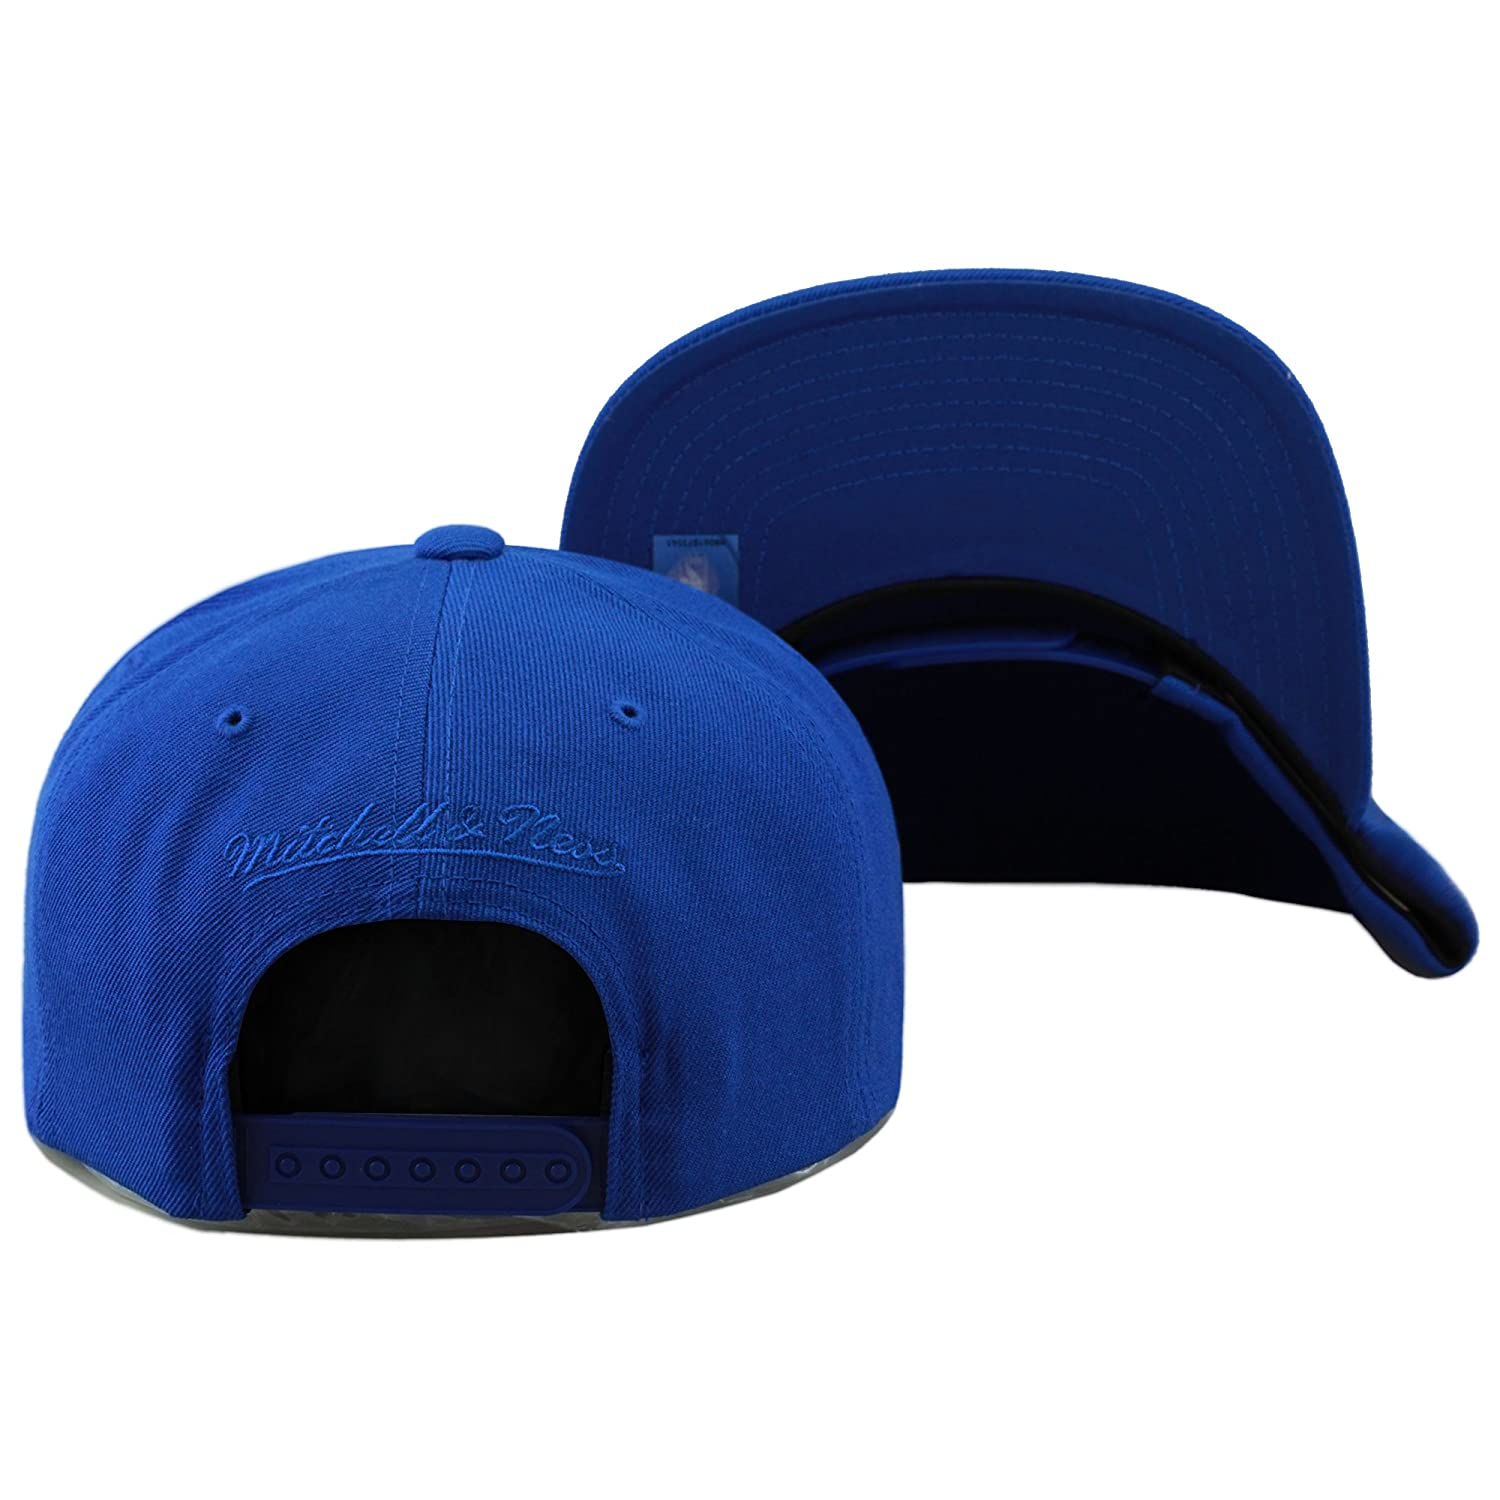 c1f3f5c128a709 Amazon.com: Mitchell & Ness NBA All Star Game Snapback Hat Cap 2000 Goden  State Warriors: Clothing